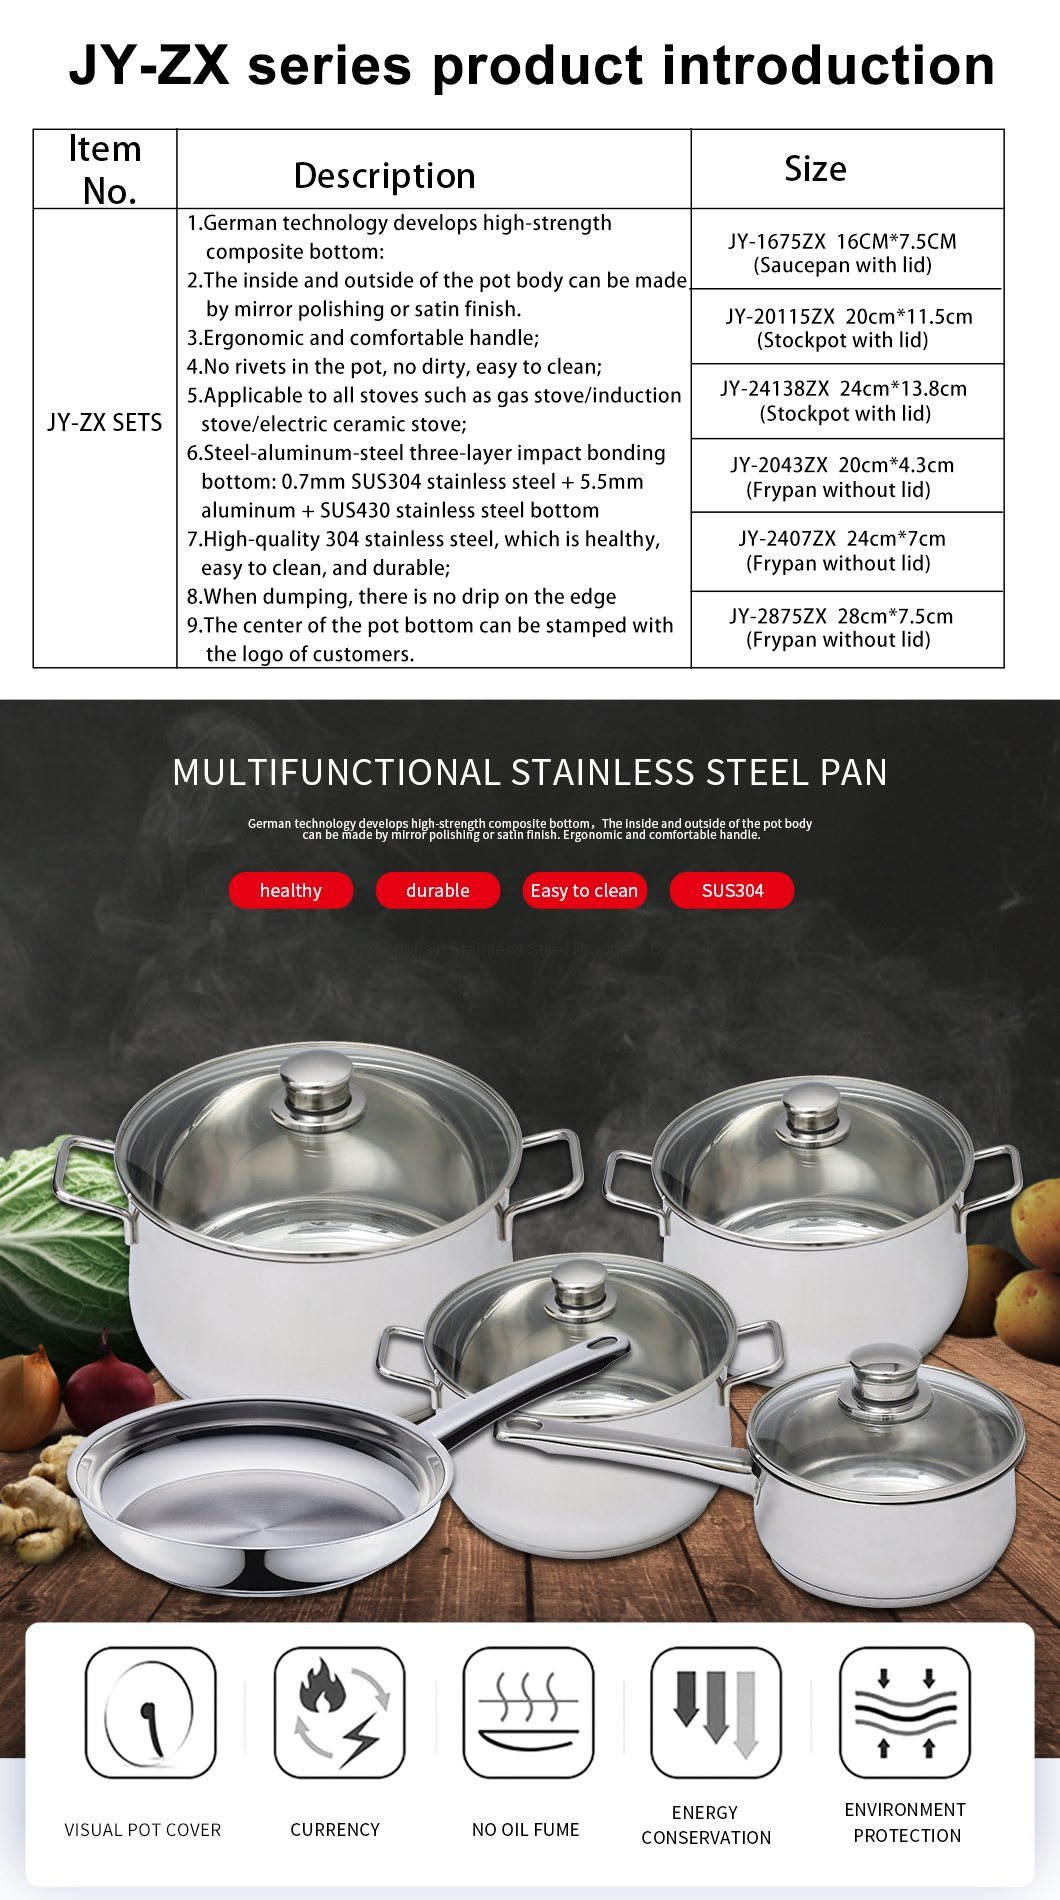 Restaurant Kitchen Durable Silvery Stainless Steel Frying Pan Wok Frypan Jy 2407zx China Pot And Soup Pot Price Made In China Com